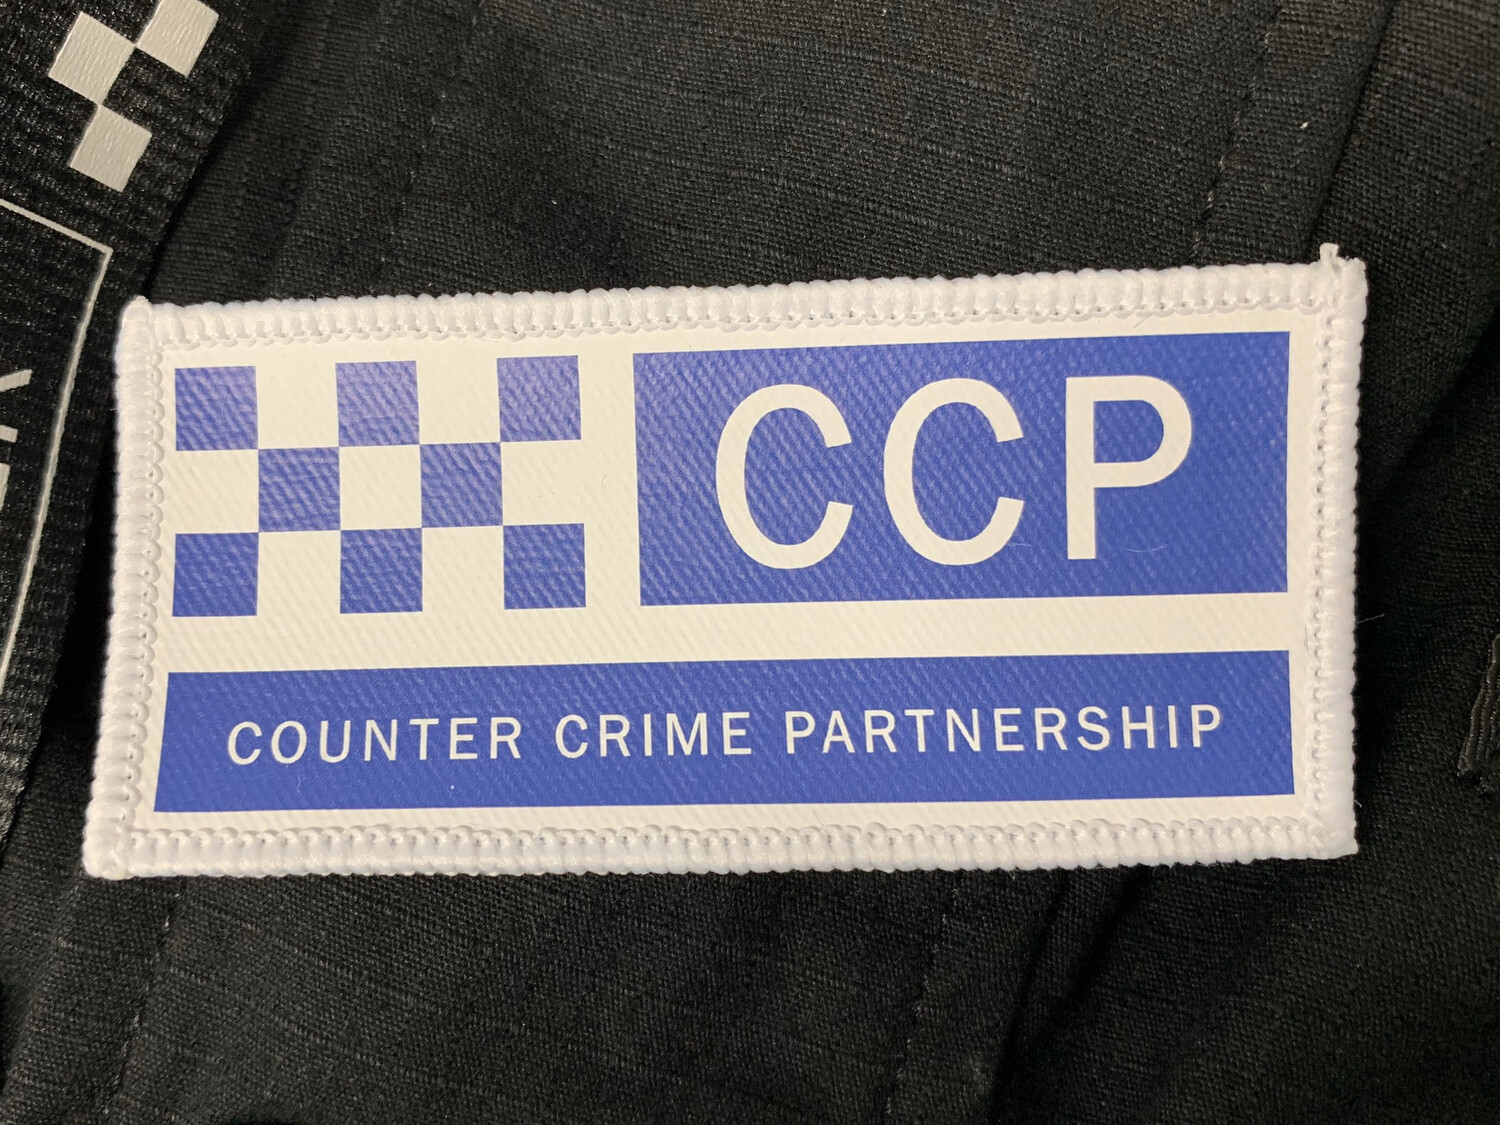 COUNTER CRIME PARTNERSHIP - Velcro Patch